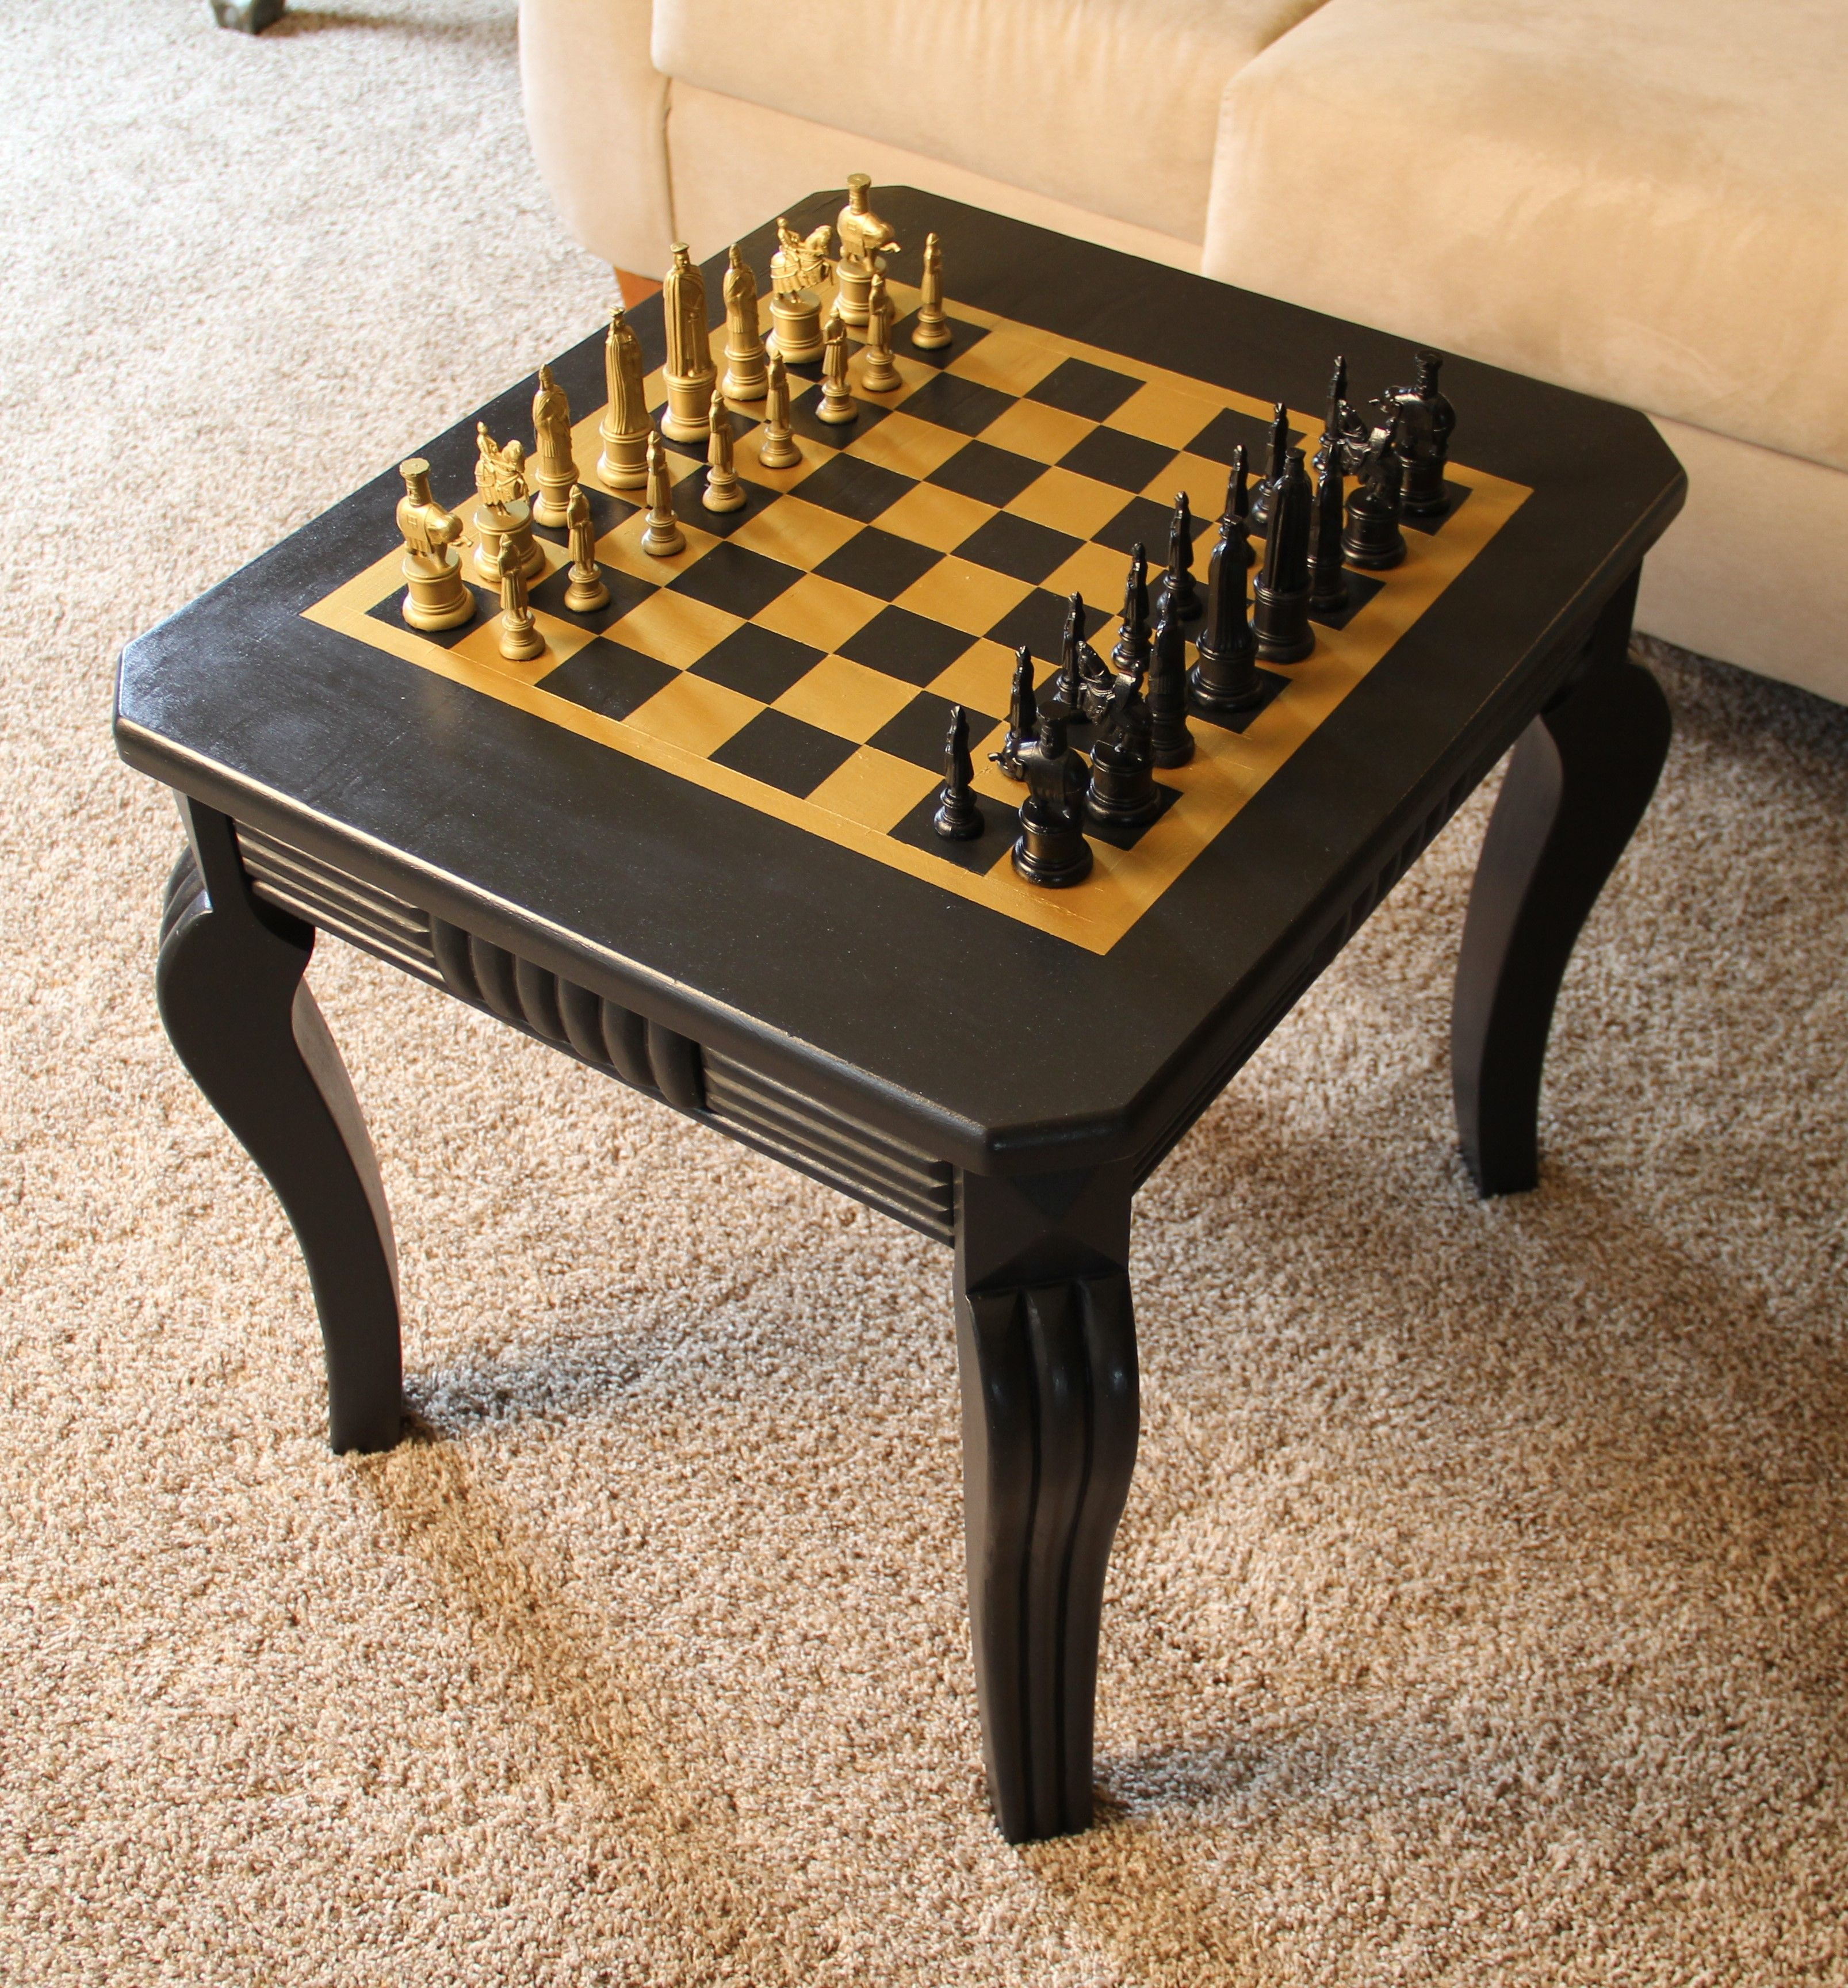 Good This Little Table Is Multi Functional And Can Be Used As A Side Table As  Well As A Game Board Table To Play Chess On! We Love The Structure And  Angles Of ...